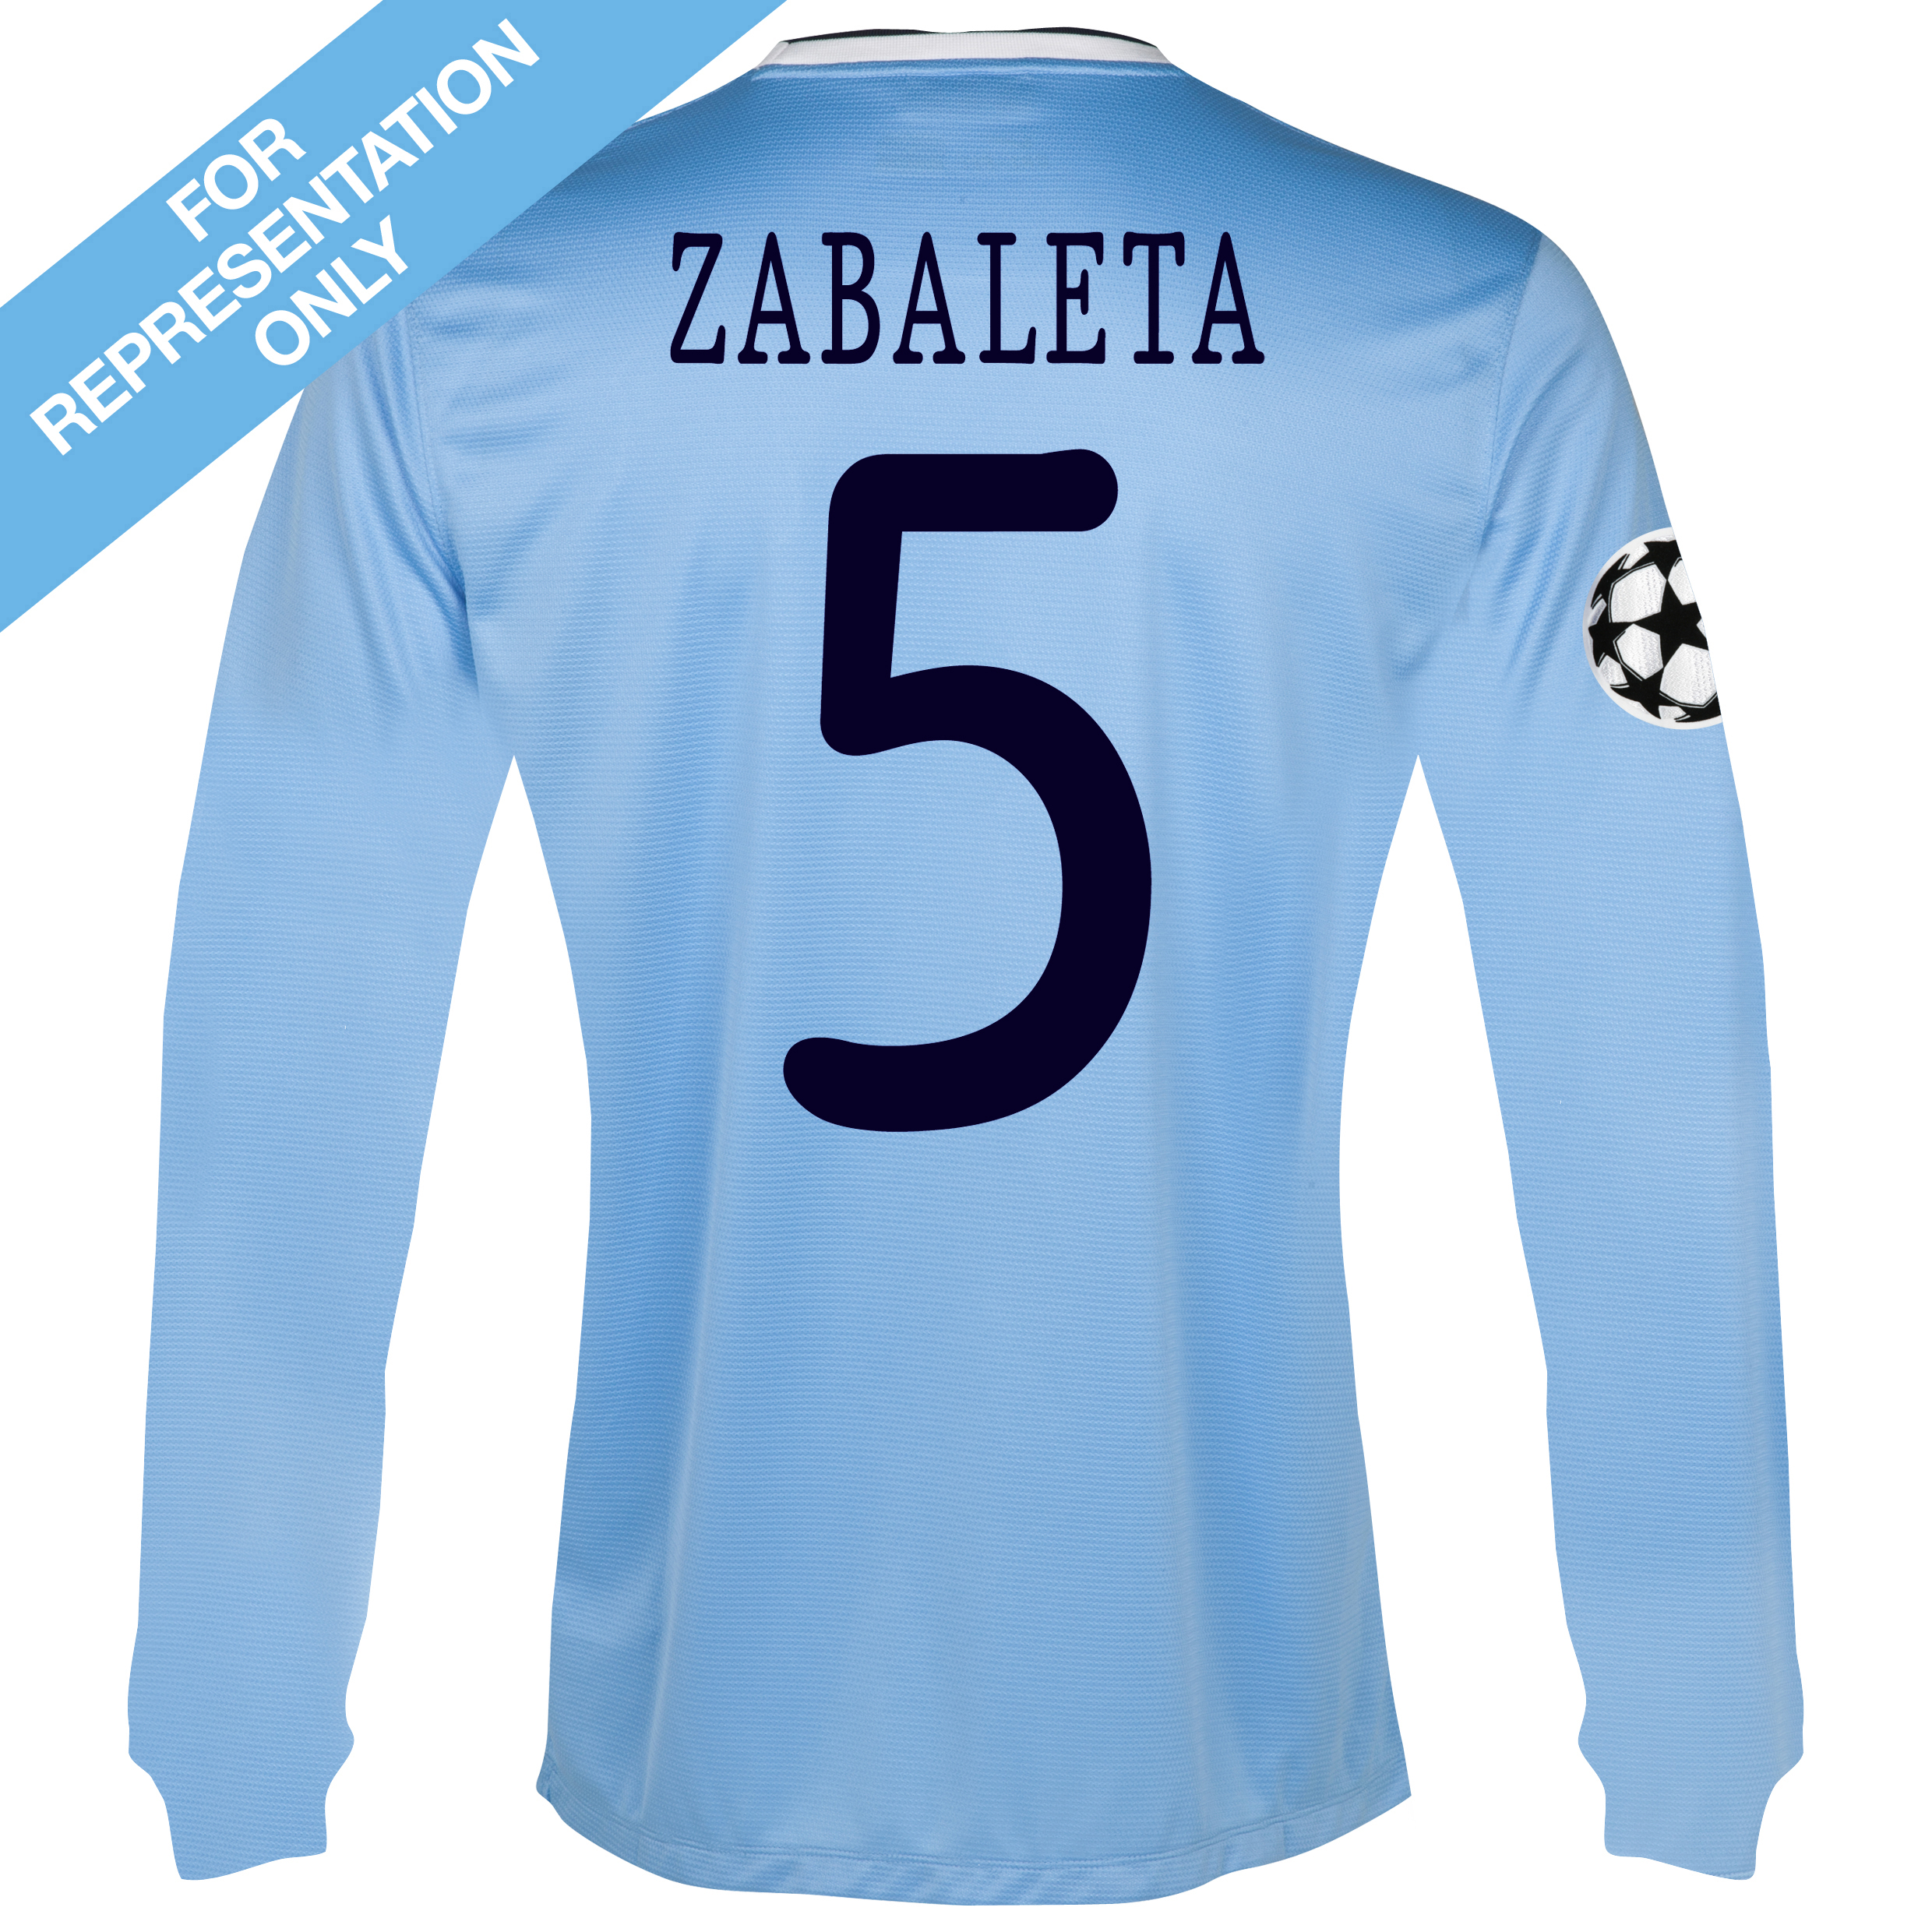 Manchester City UEFA Champions League Home Shirt 2013/14 - Long Sleeved with Zabaleta 5 printing